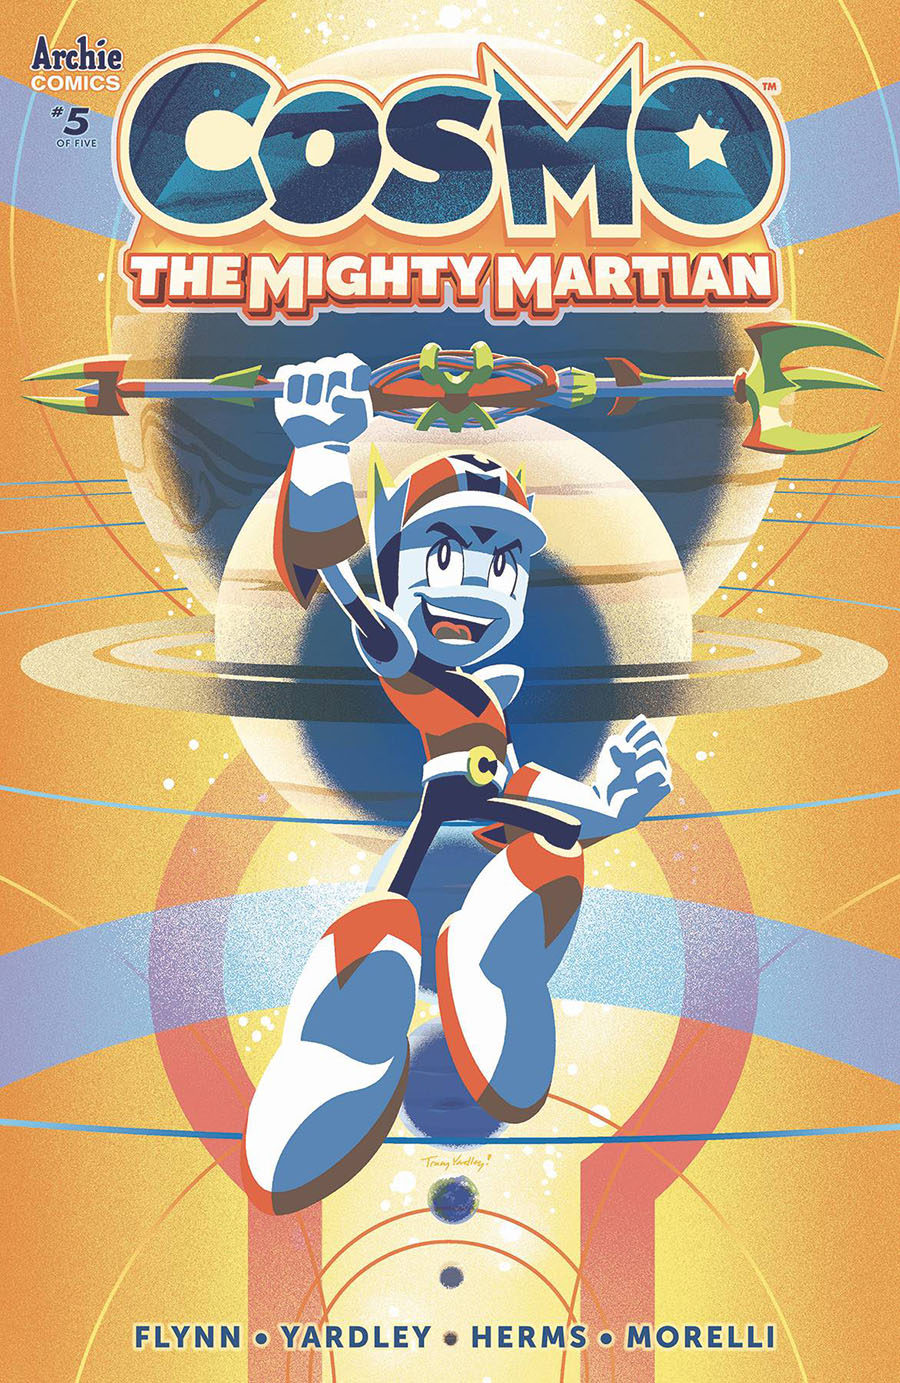 Cosmo The Mighty Martian #5 Cover A Regular Tracy Yardley Cover